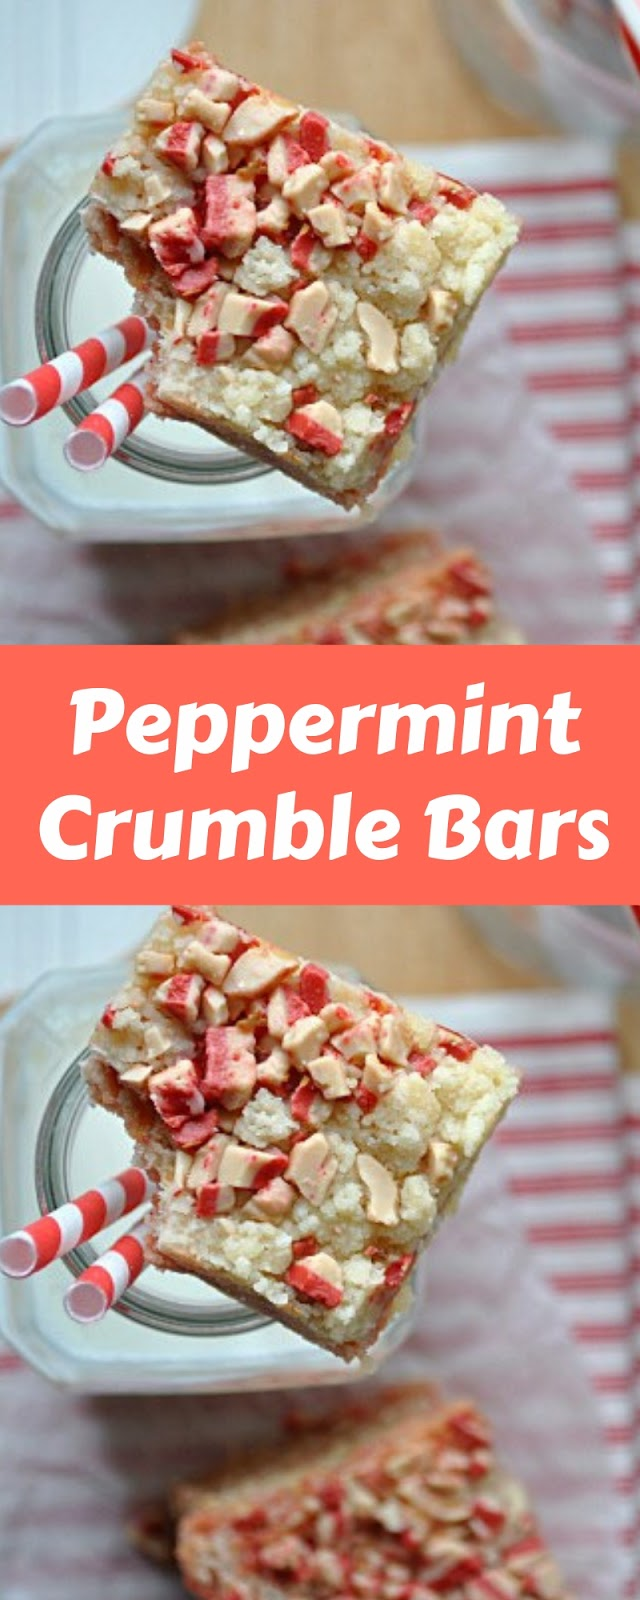 Easy Peppermint Crumble Bars Recipe